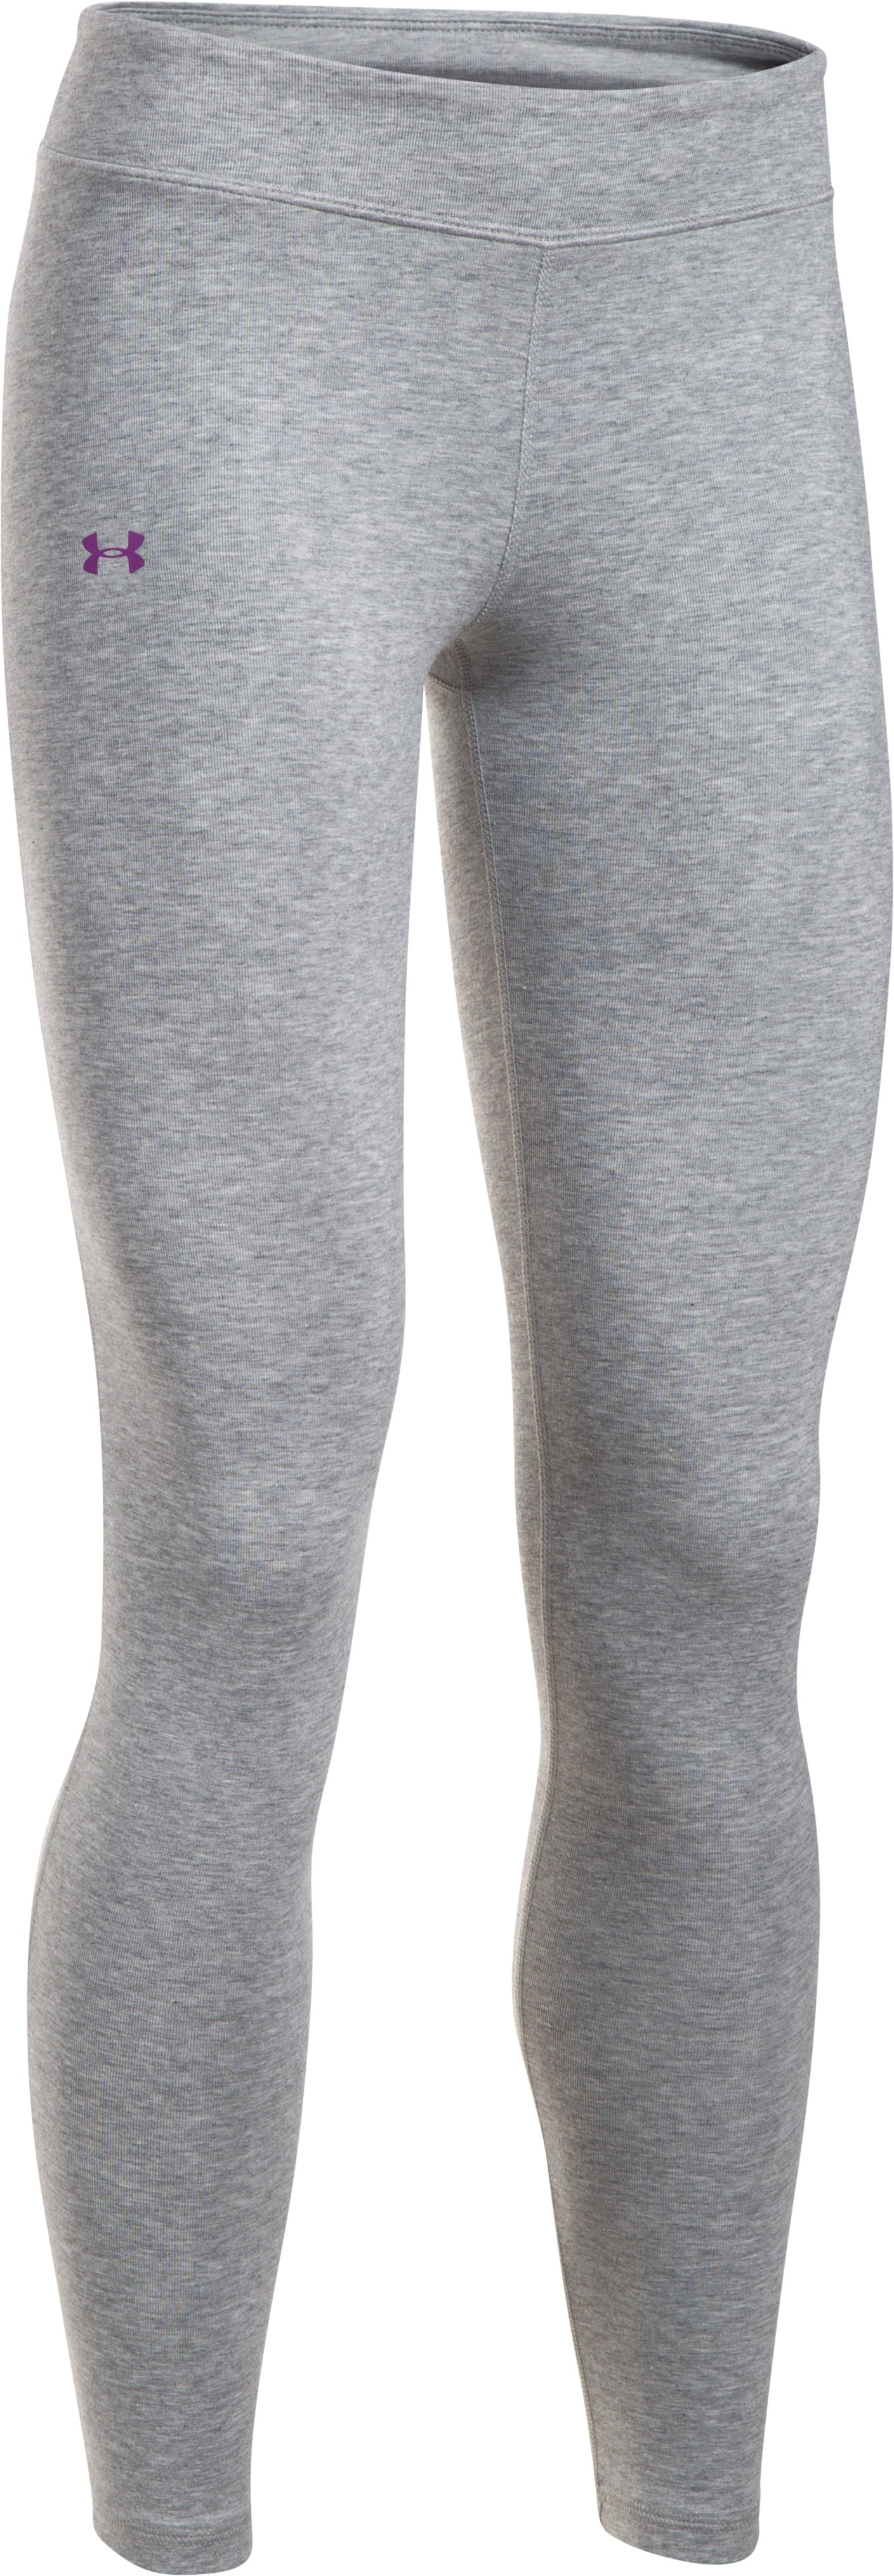 Girls' UA Favorite Knit Leggings, True Gray Heather